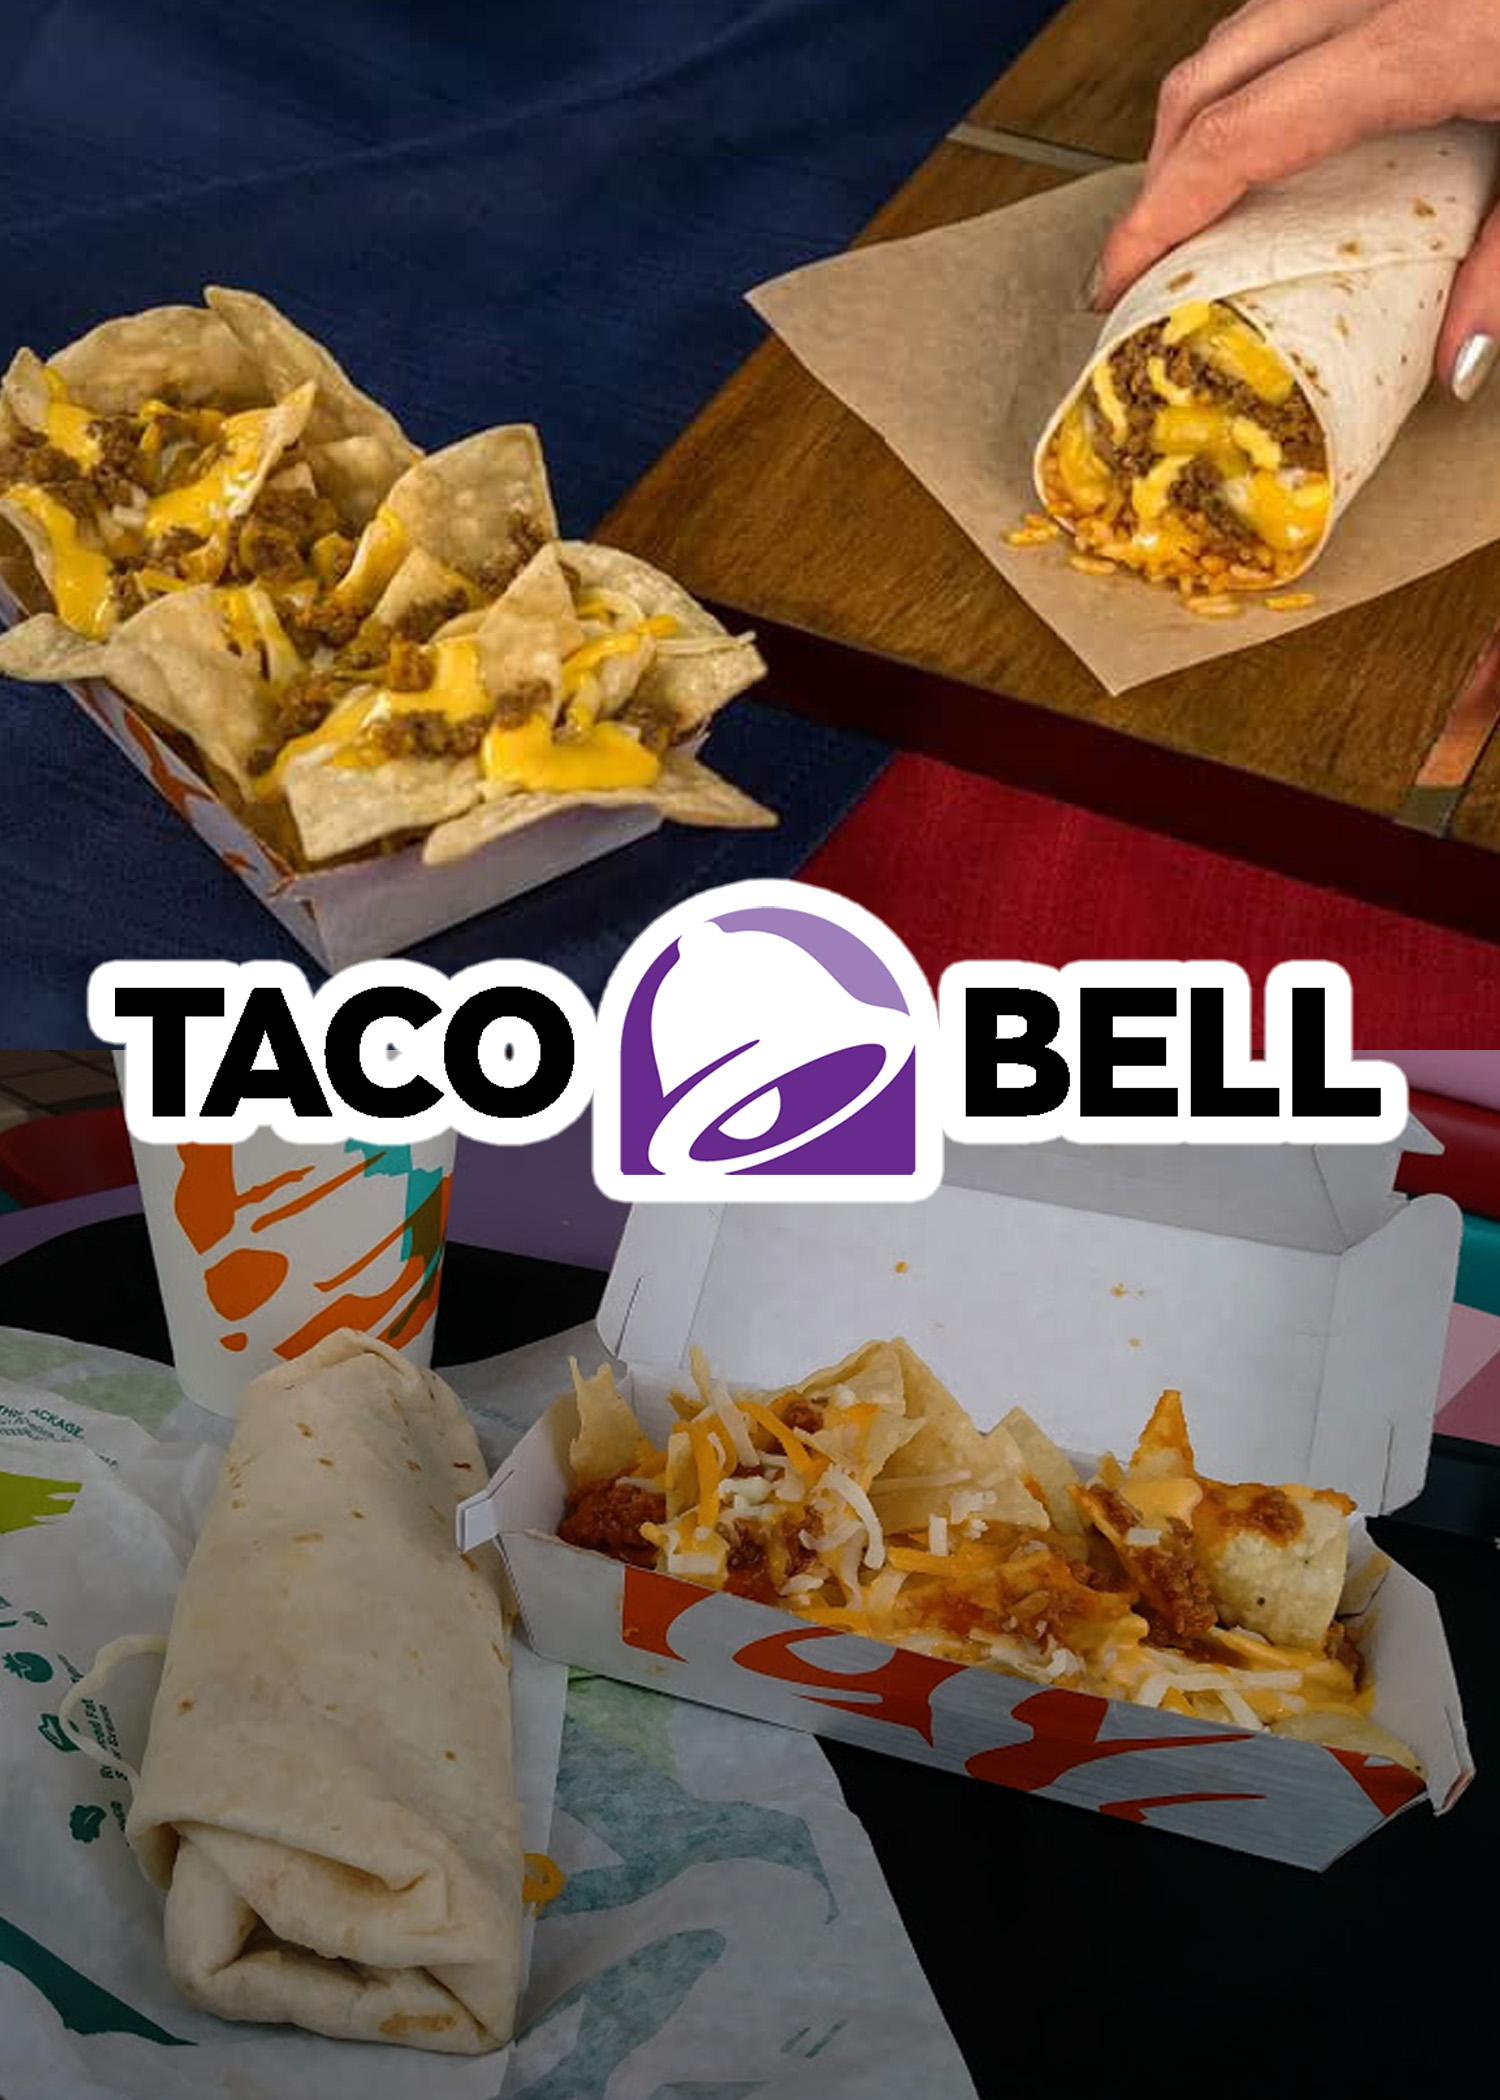 FOOD COMPARE tacobell.jpg